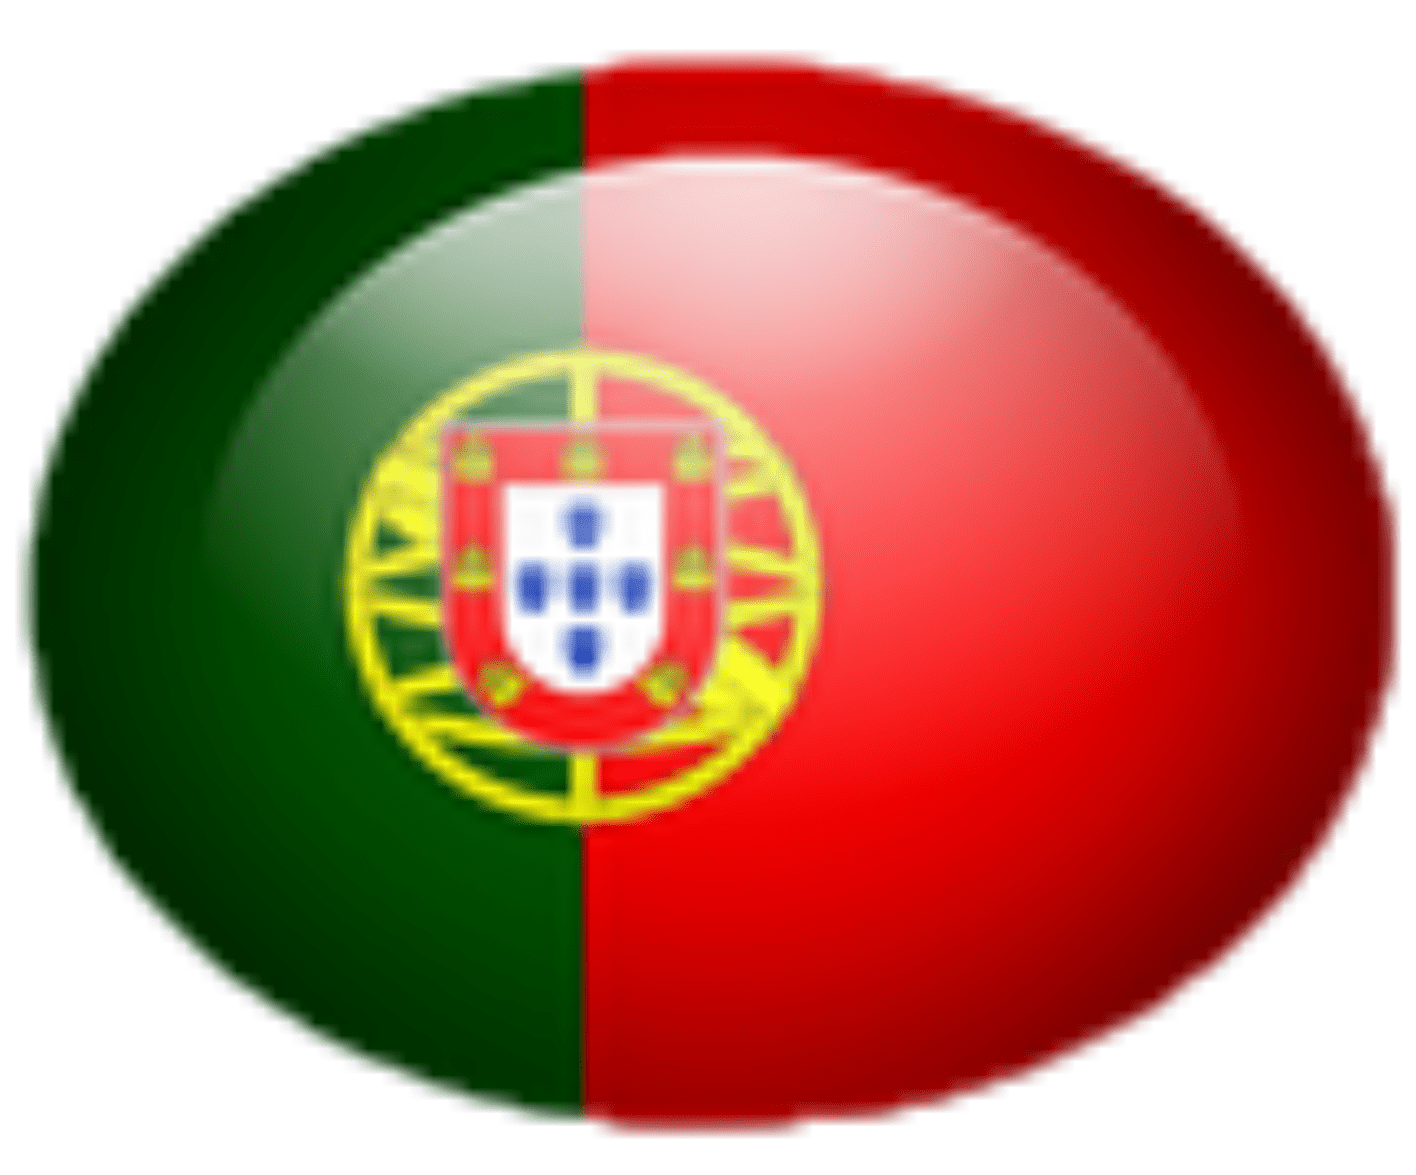 Traduction du mod Mod d'Allocation en Portugais